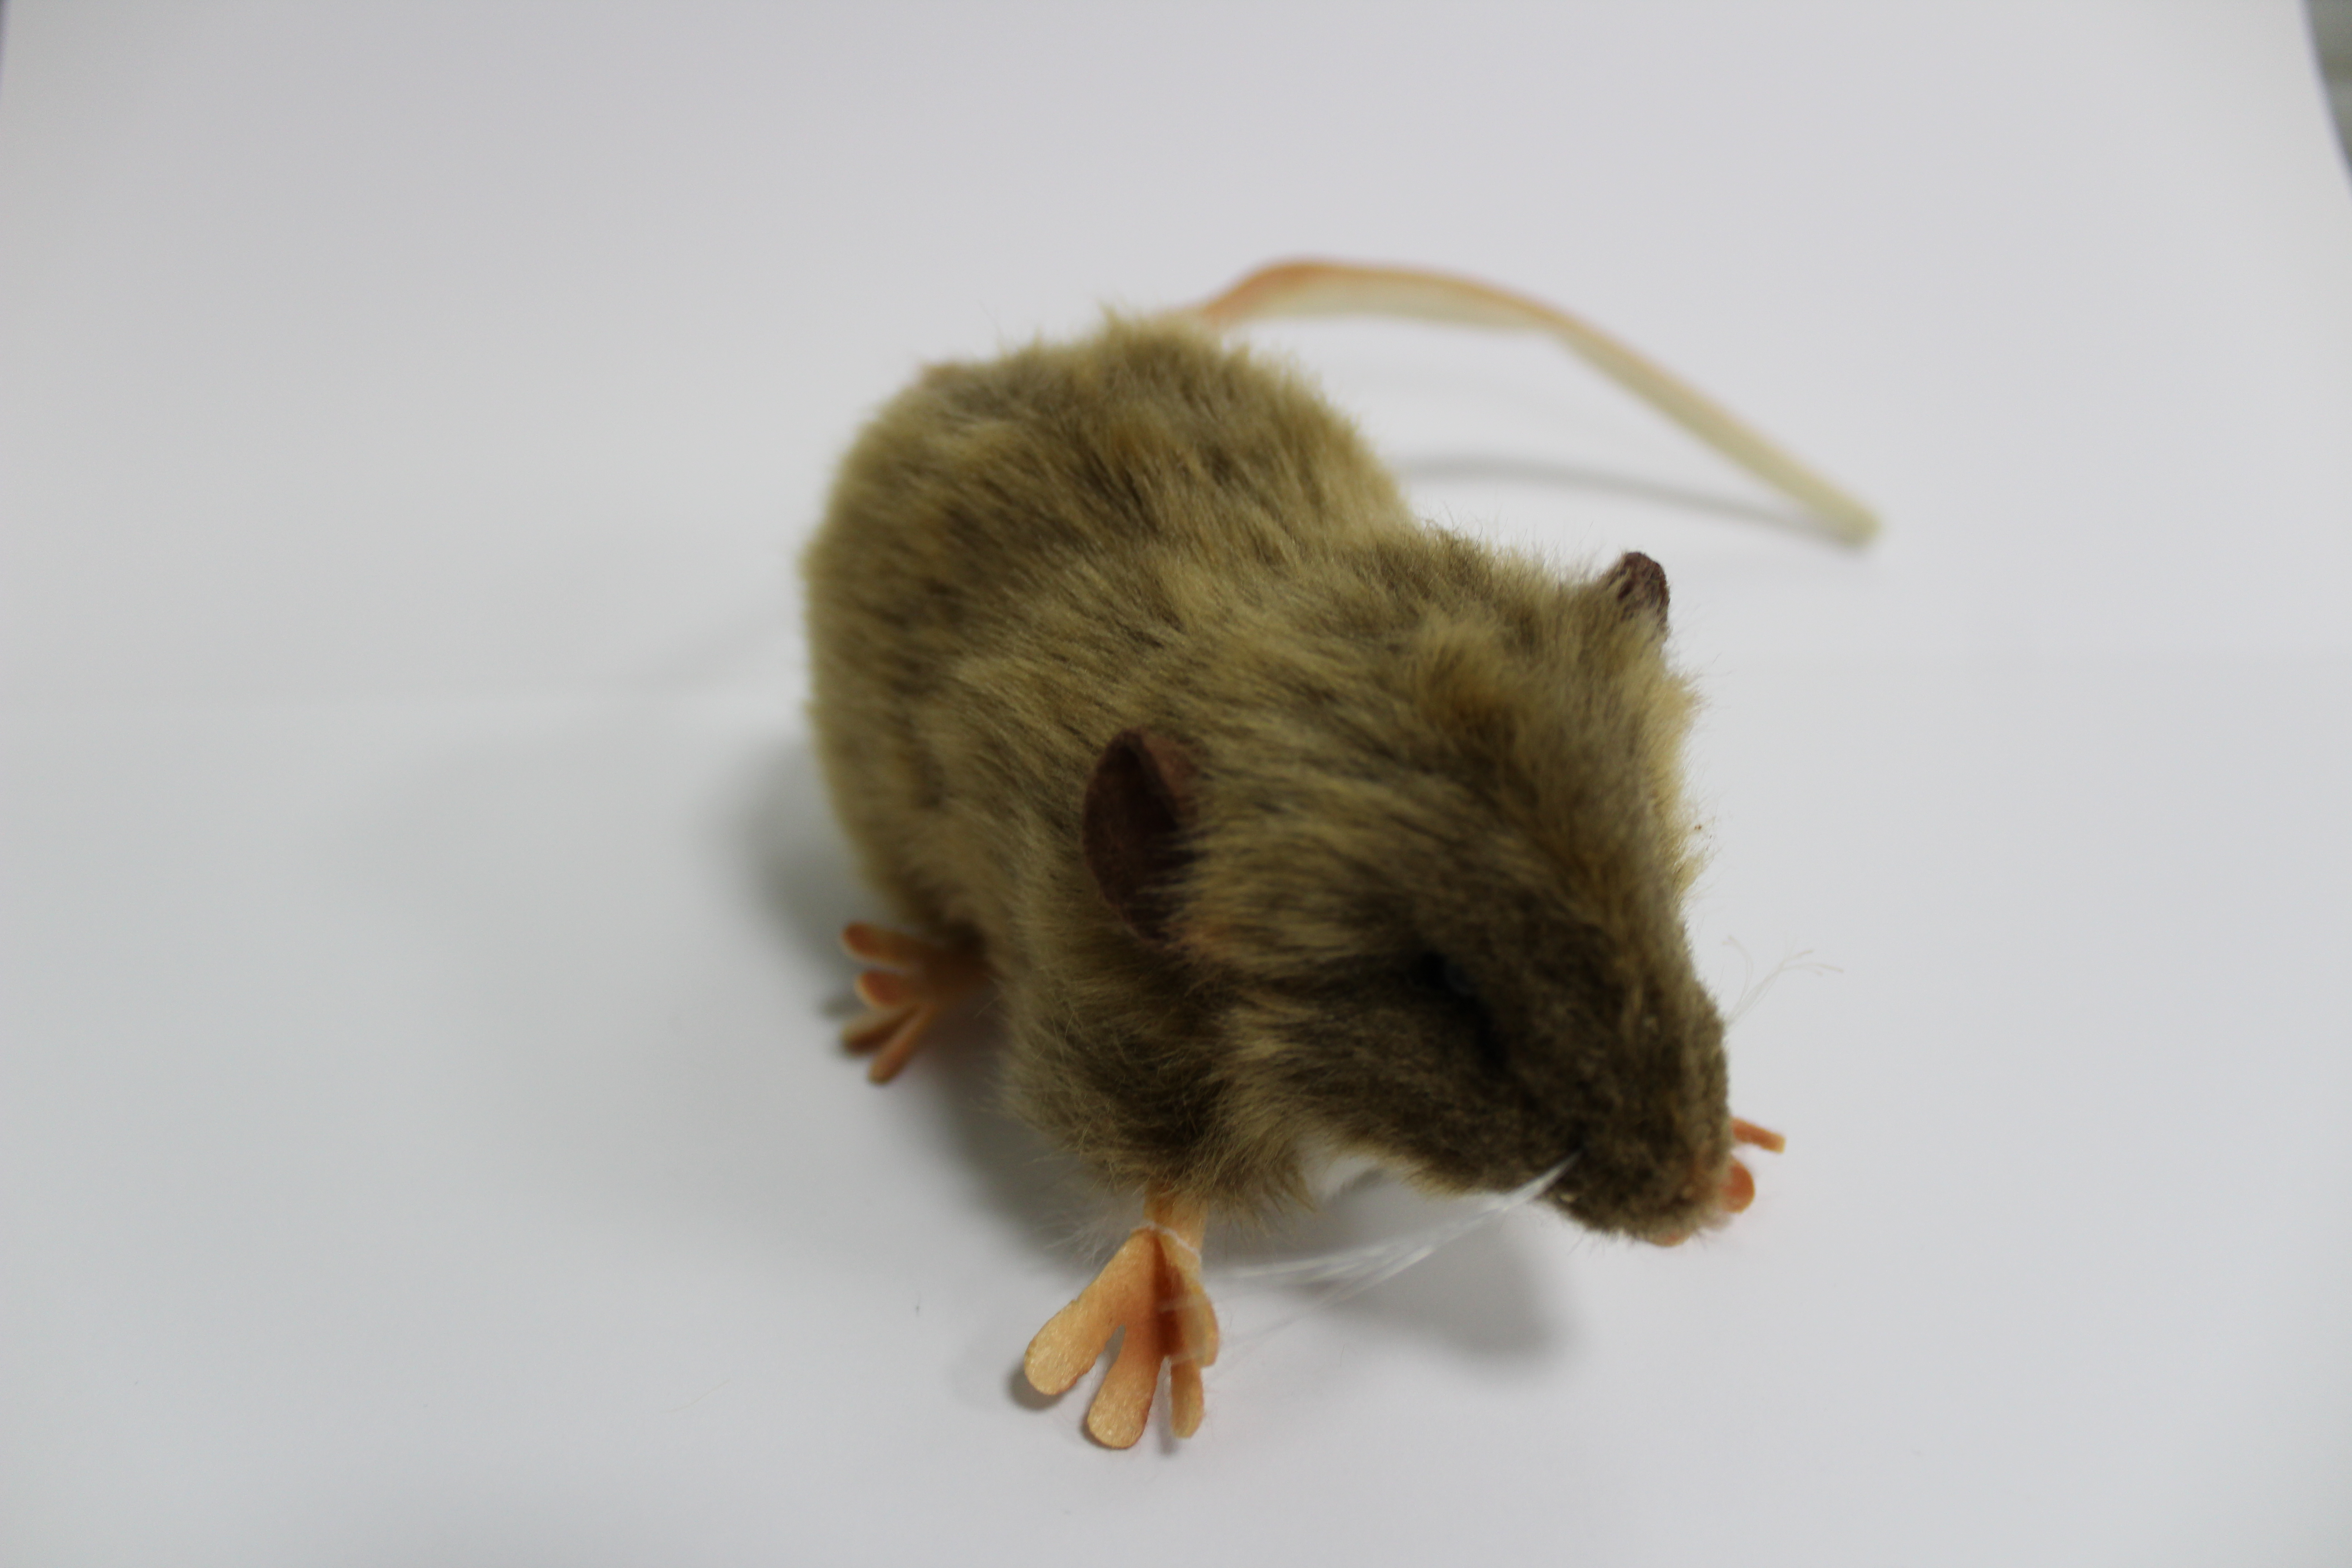 The toy rat on sale at The National Archives